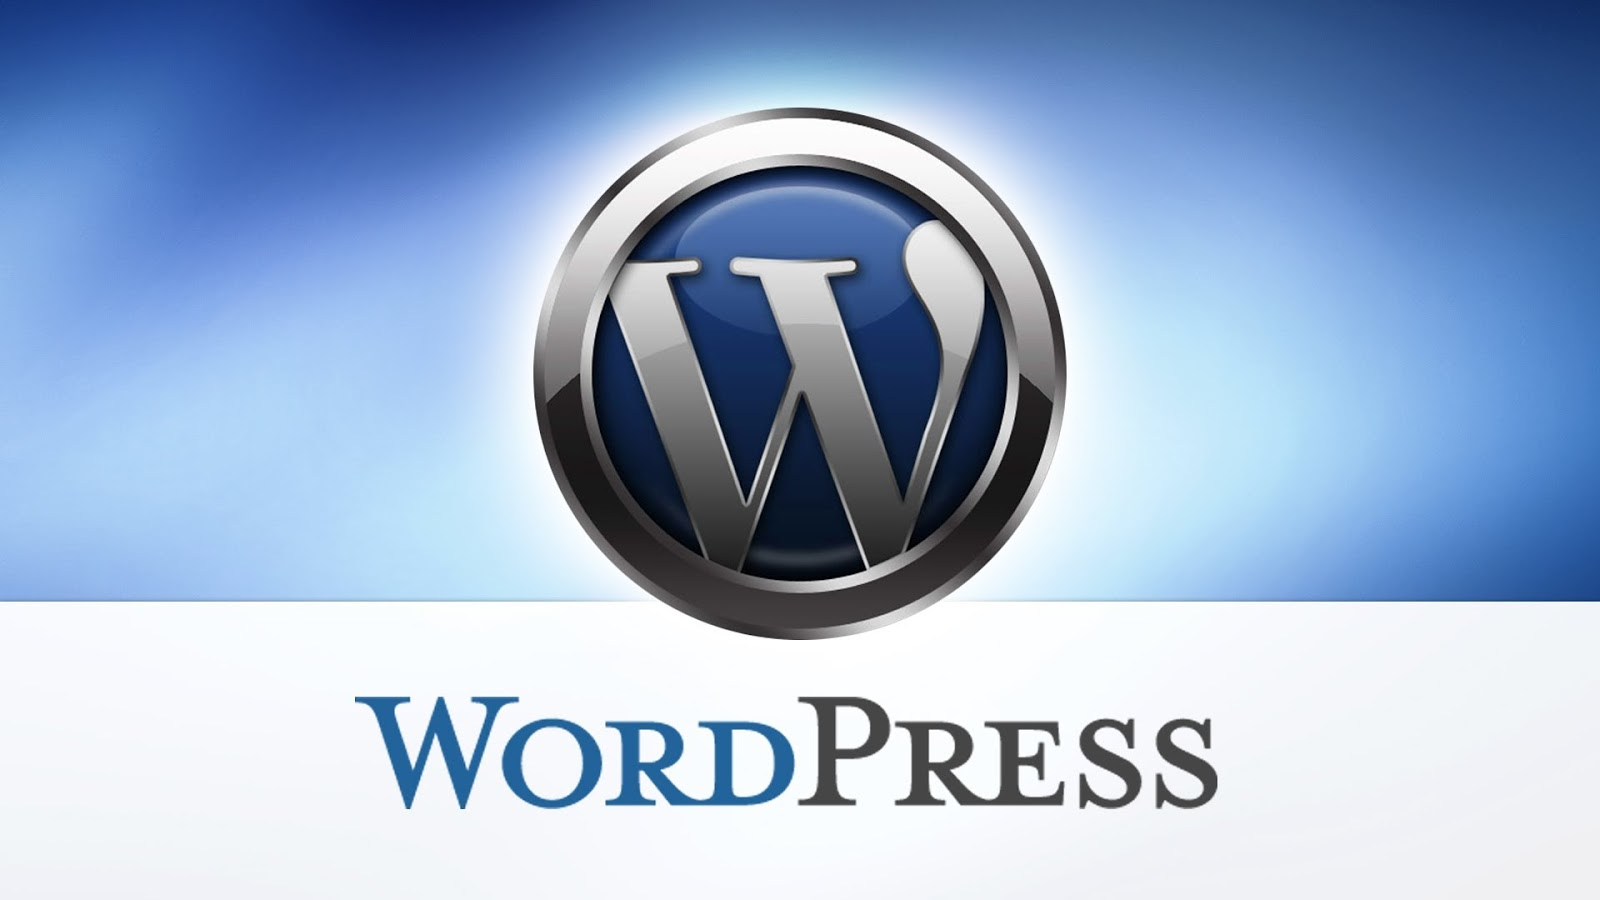 Why Create Your Web Page With the WordPress System?